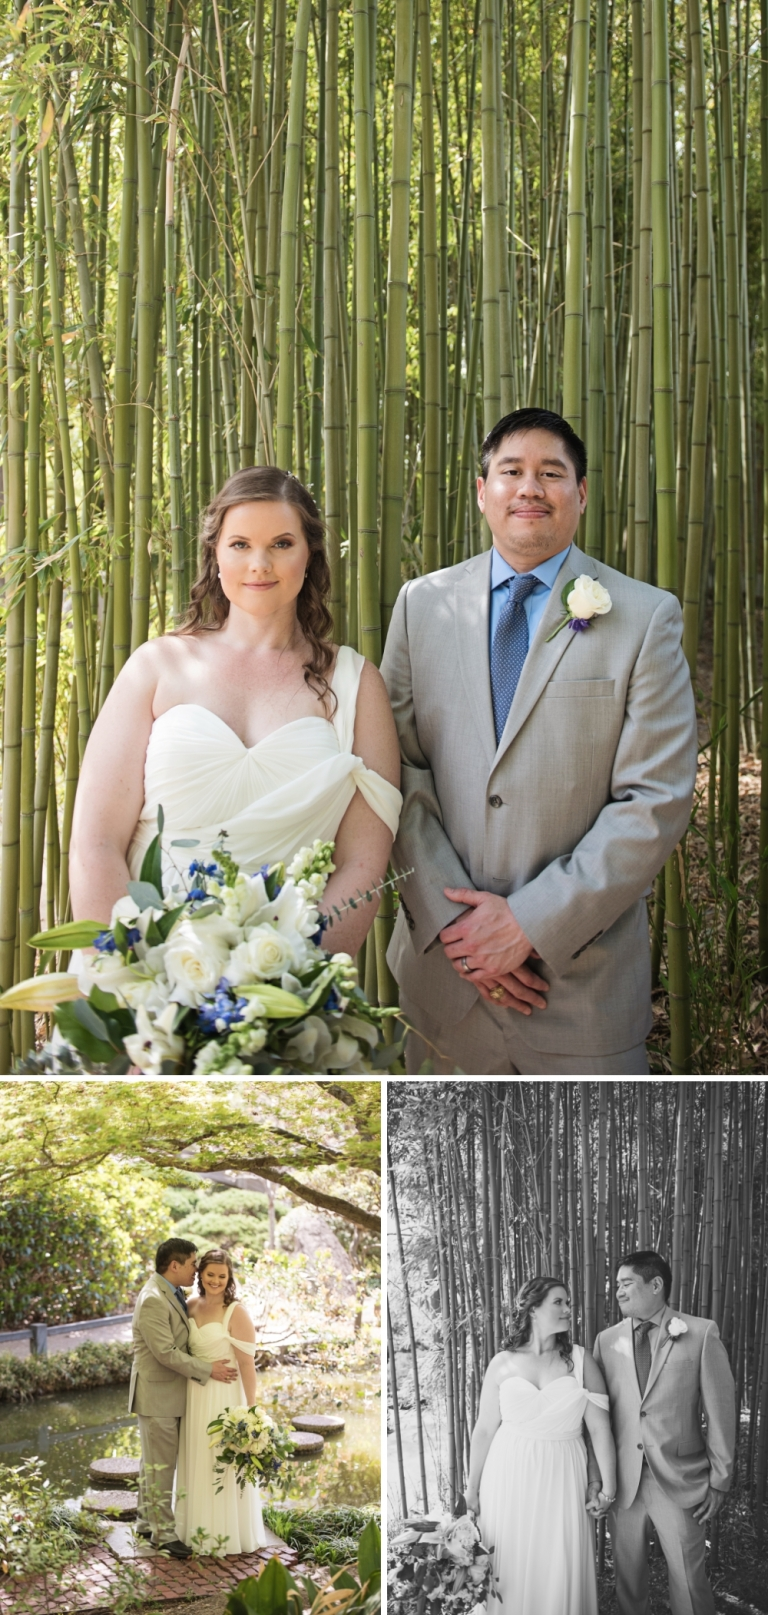 Intimate Wedding at the Fort Worth Japanese Gardens